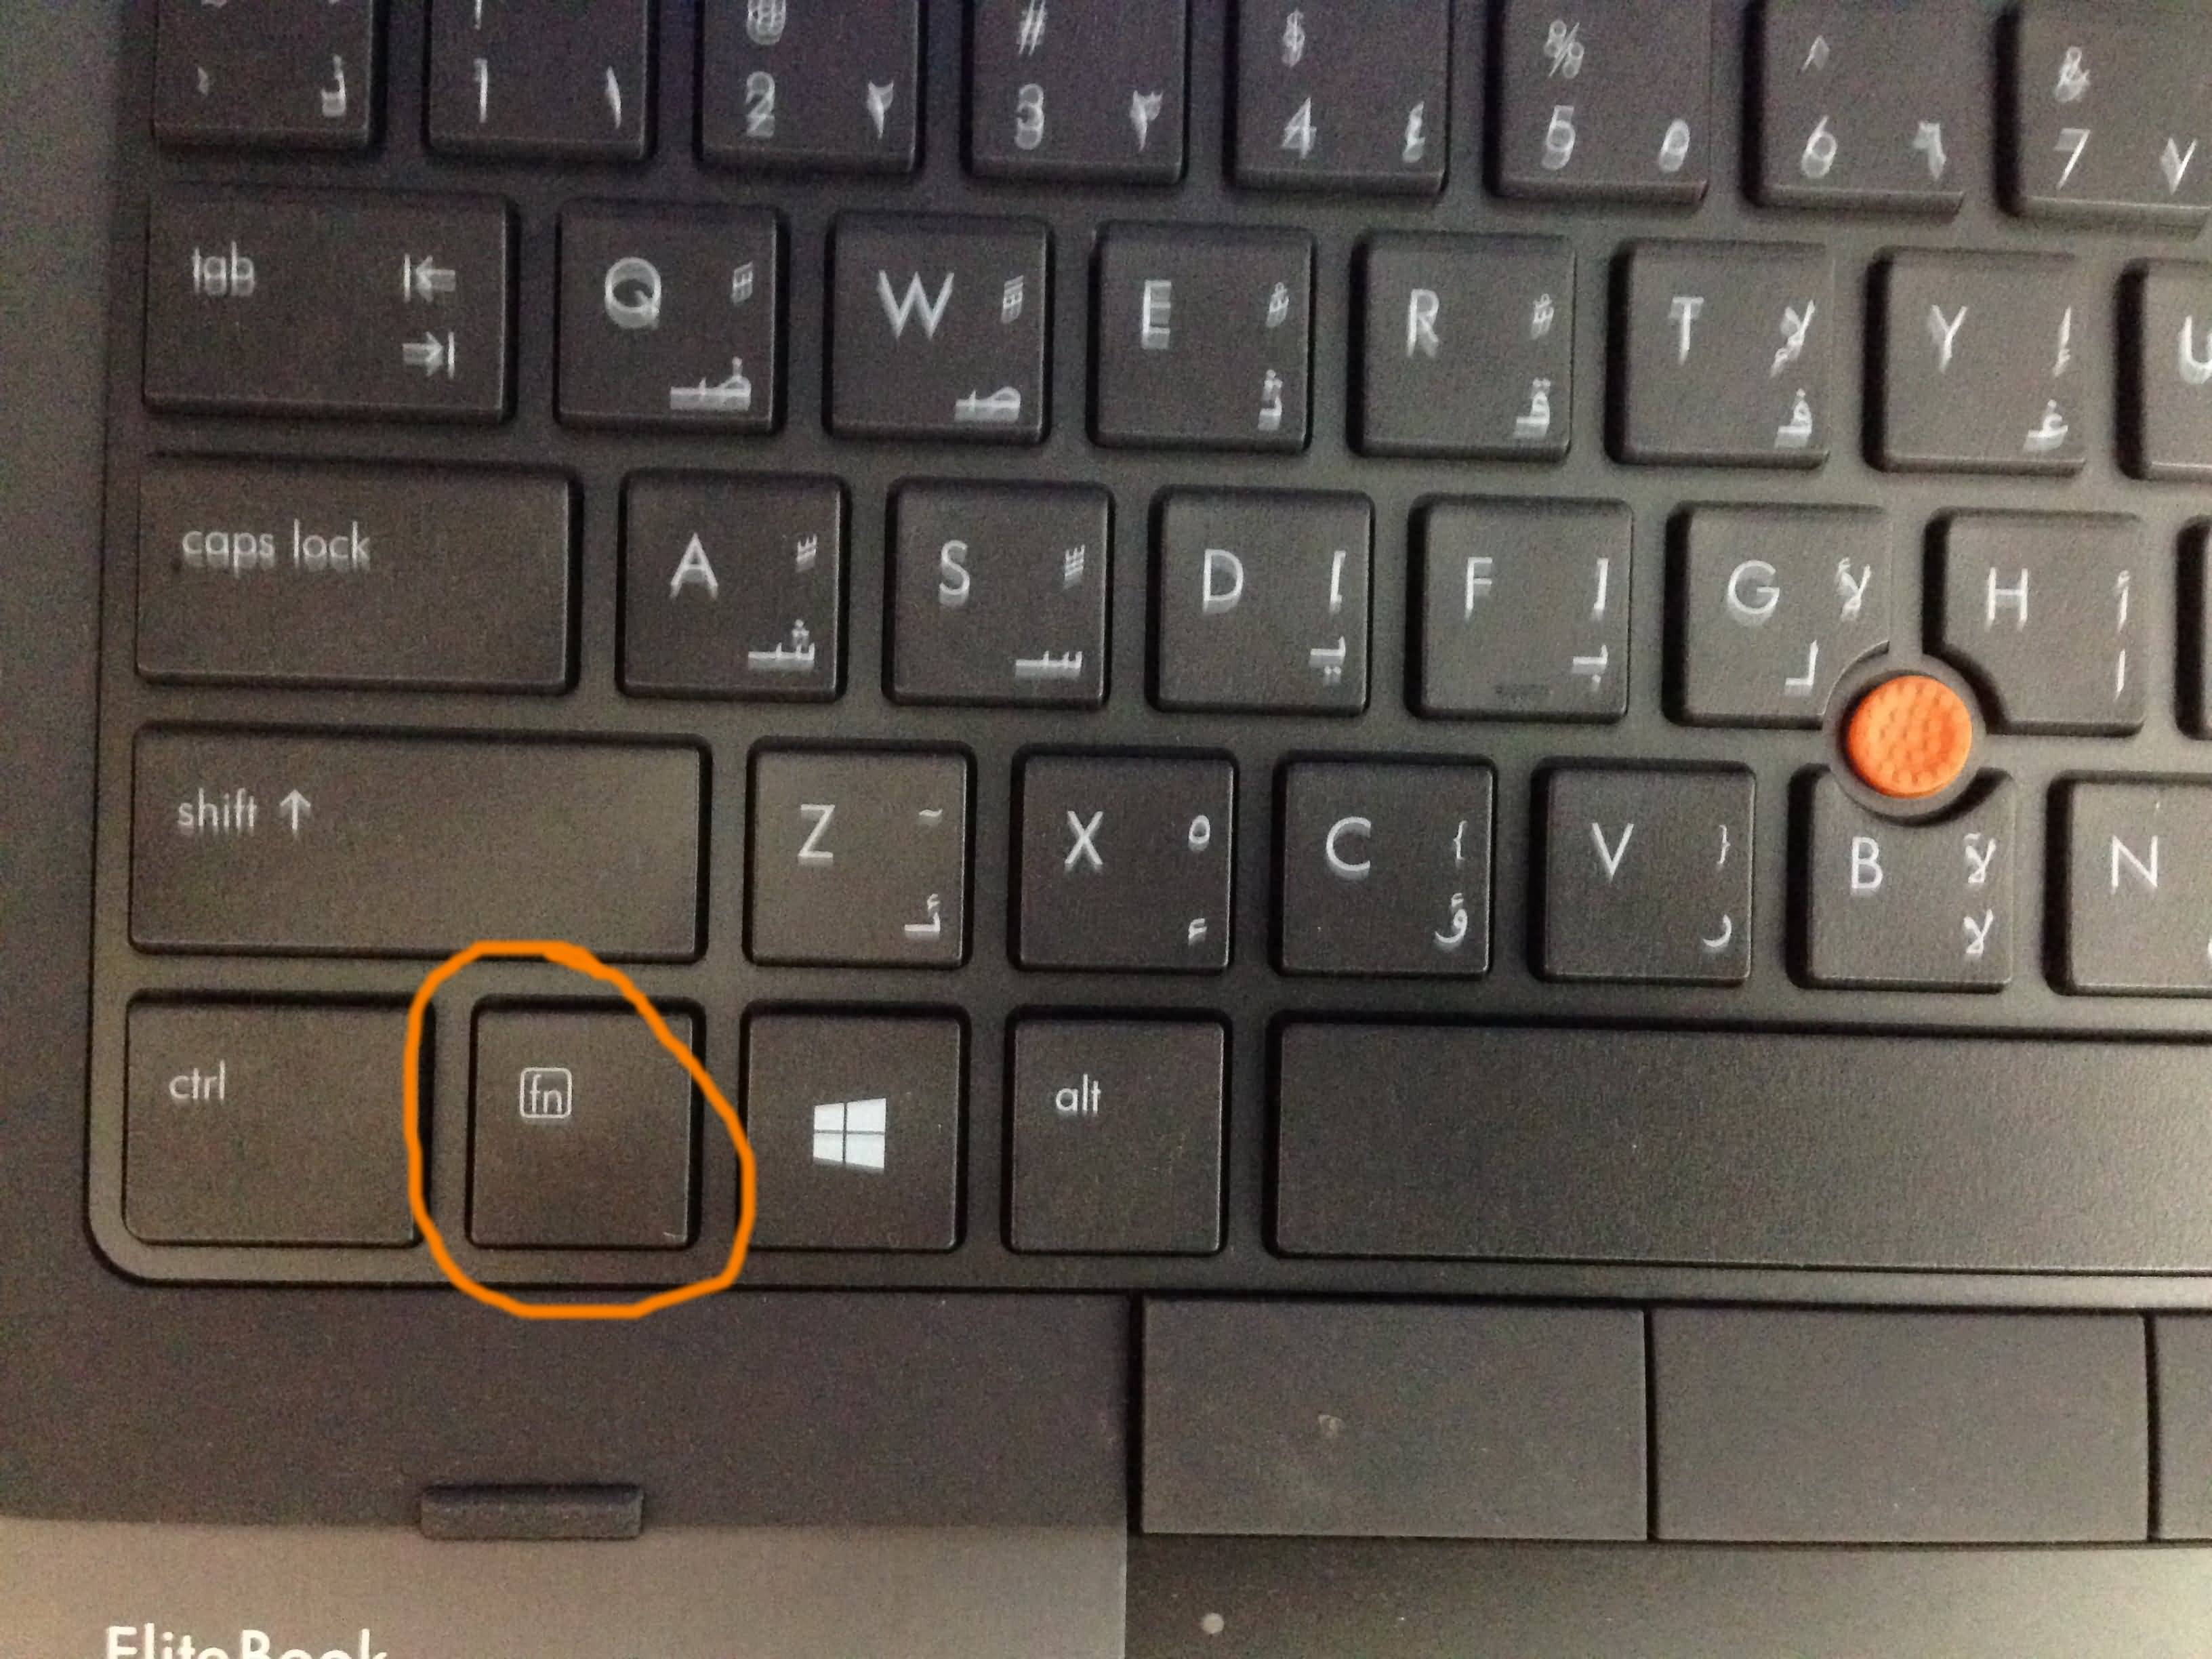 PrtScr key on a Mac keyboard on a Windows computer